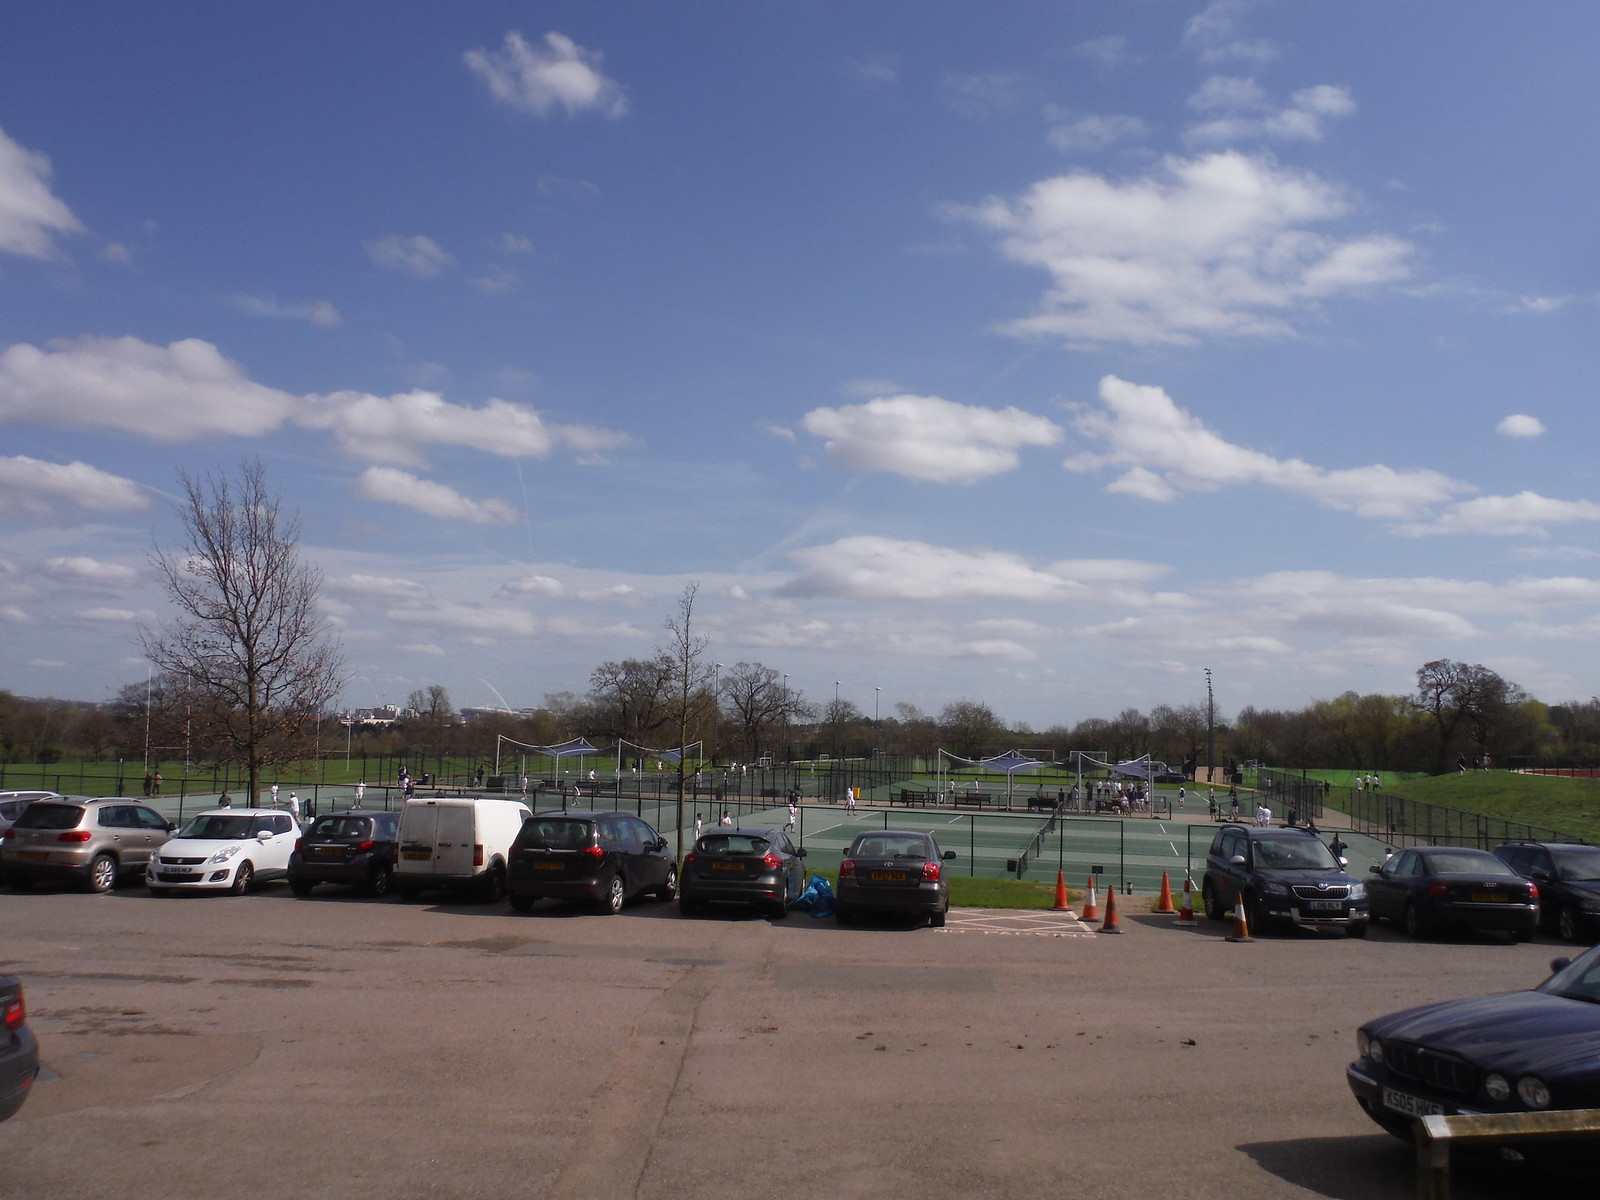 The contentious Tennis Courts, built over existing Right of Ways SWC Short Walk 40 - Harrow-on-the-Hill (South Kenton or Northwick Park to Harrow-on-the-Hill)